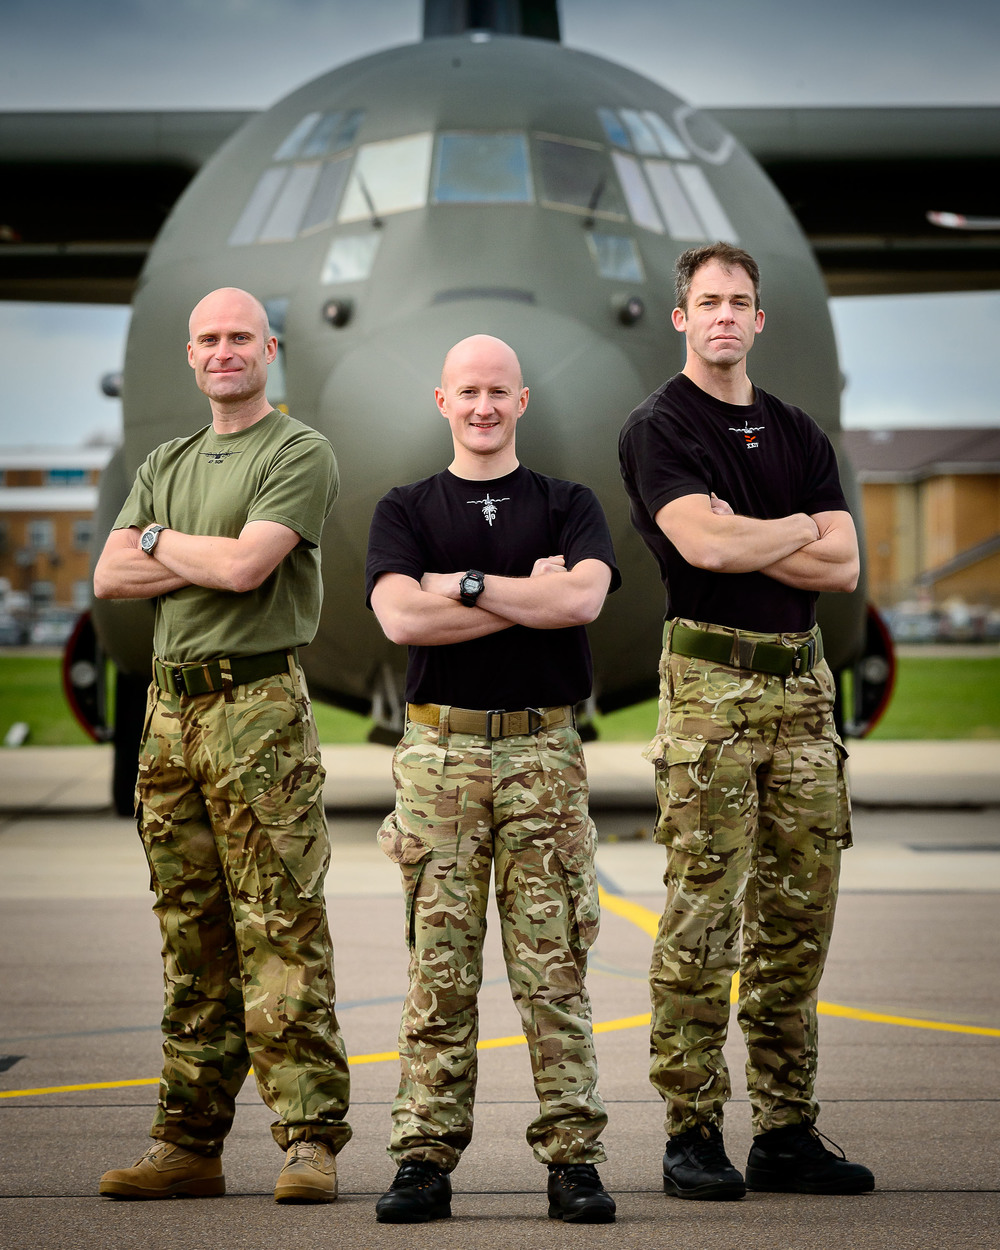 Flt Lt Graeme Hunt 47 Sqn, FLt Lt Tom Mountney 30 Sqn & Flt Lt R